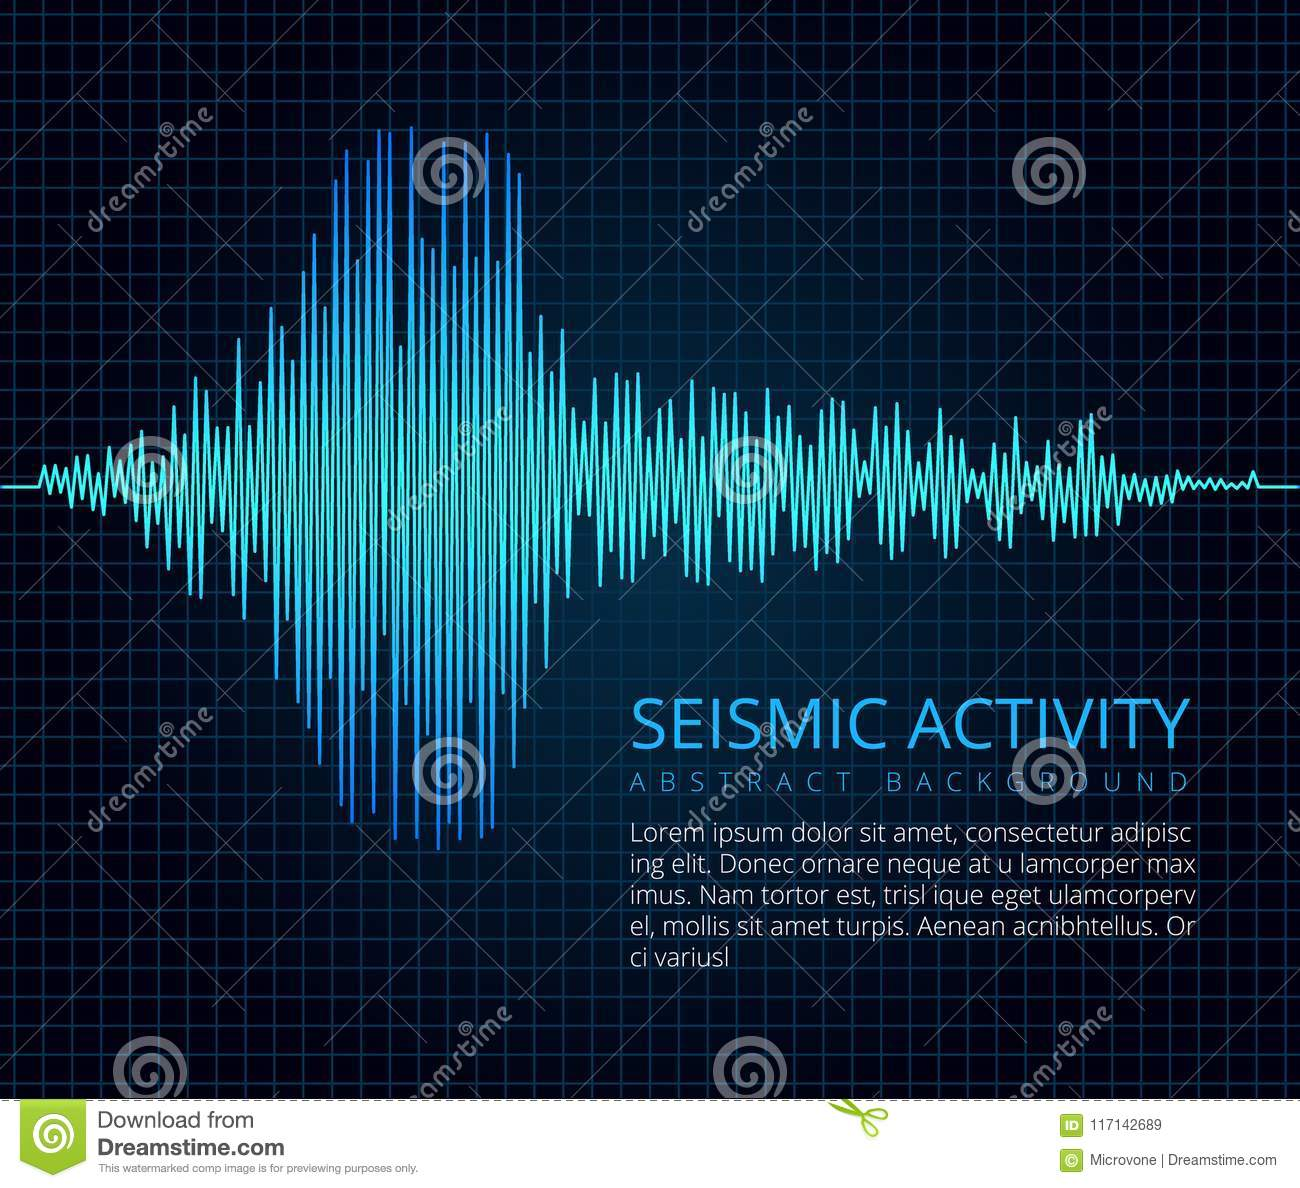 Earthquake Frequency Wave Graph Seismic Activity Vector